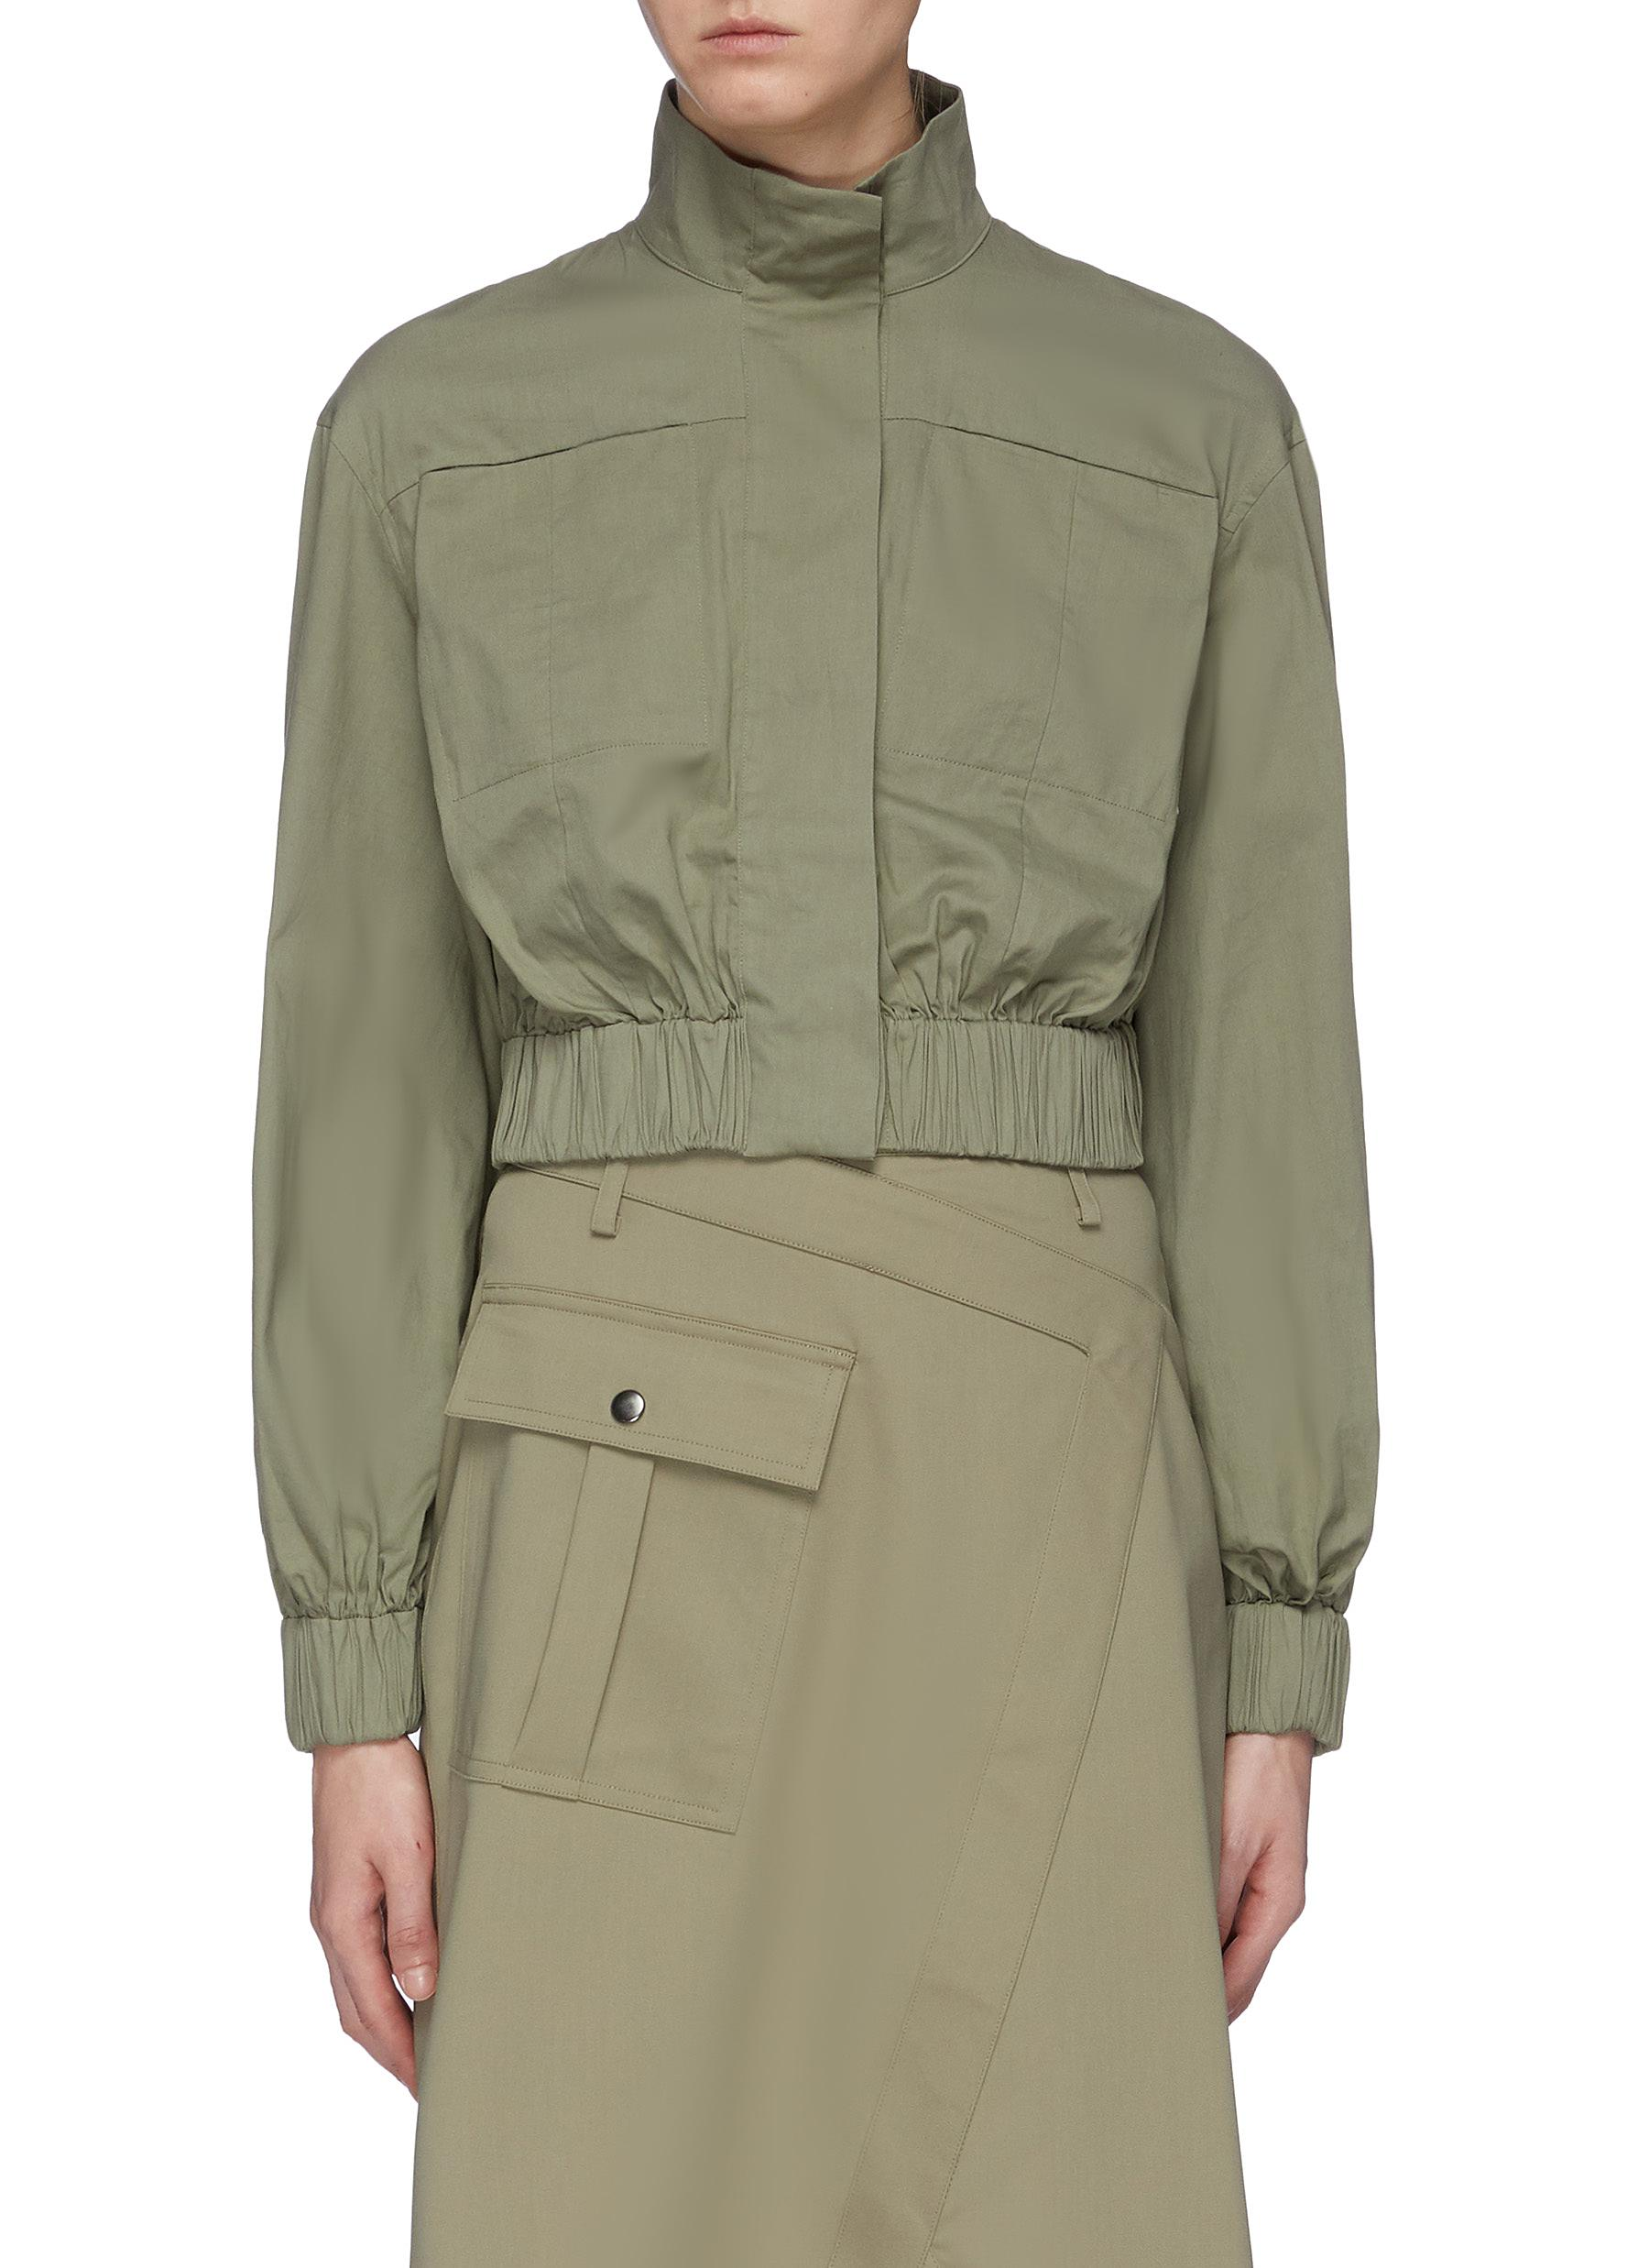 Perennial puff sleeve cropped shirt by C/Meo Collective